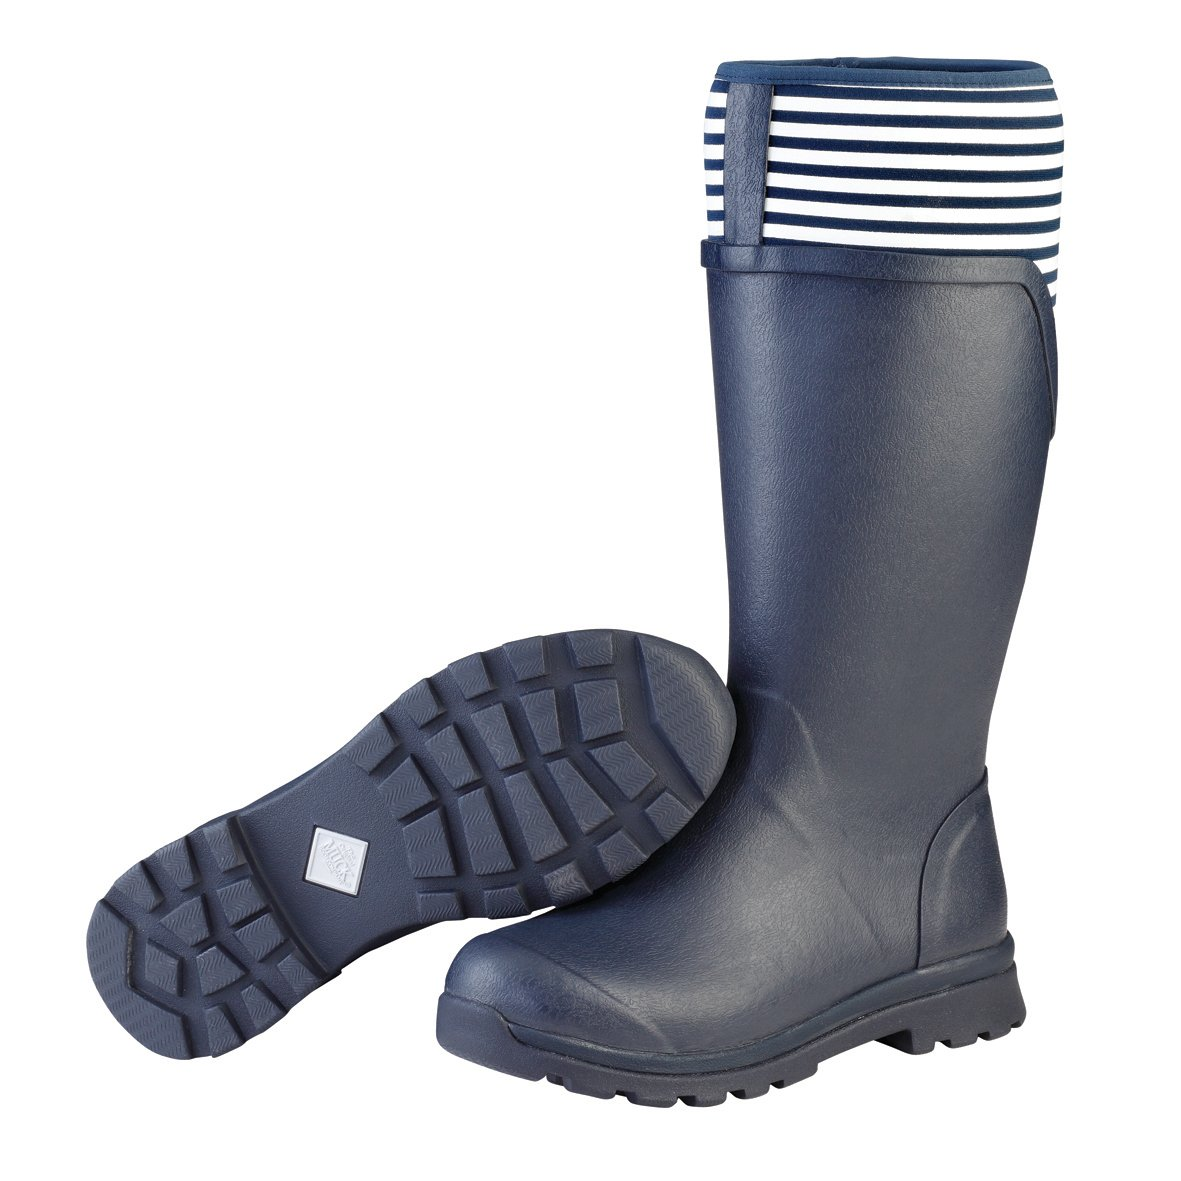 Muck Boot Women's Cambridge Tall Snow B01NATCXBB 11 B(M) US|Navy With White Stripe